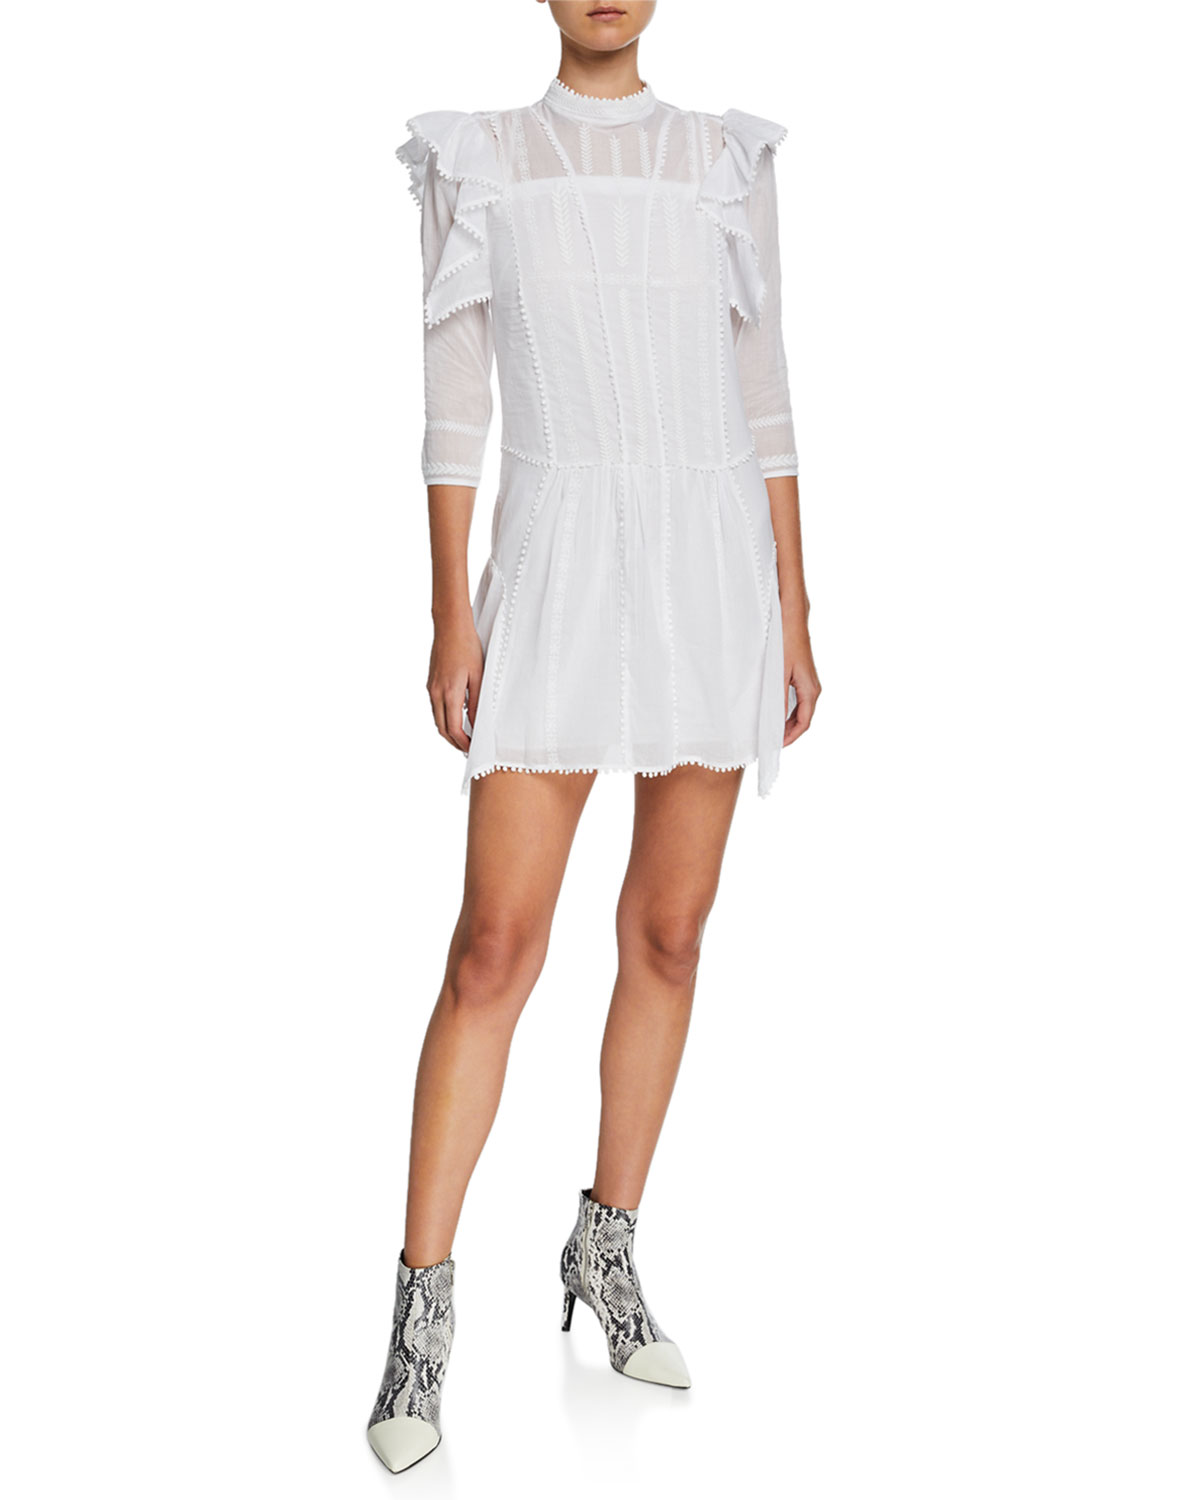 Etoile Isabel Marant Alba Embroidered Ruffle 3/4-Sleeve Short Dress